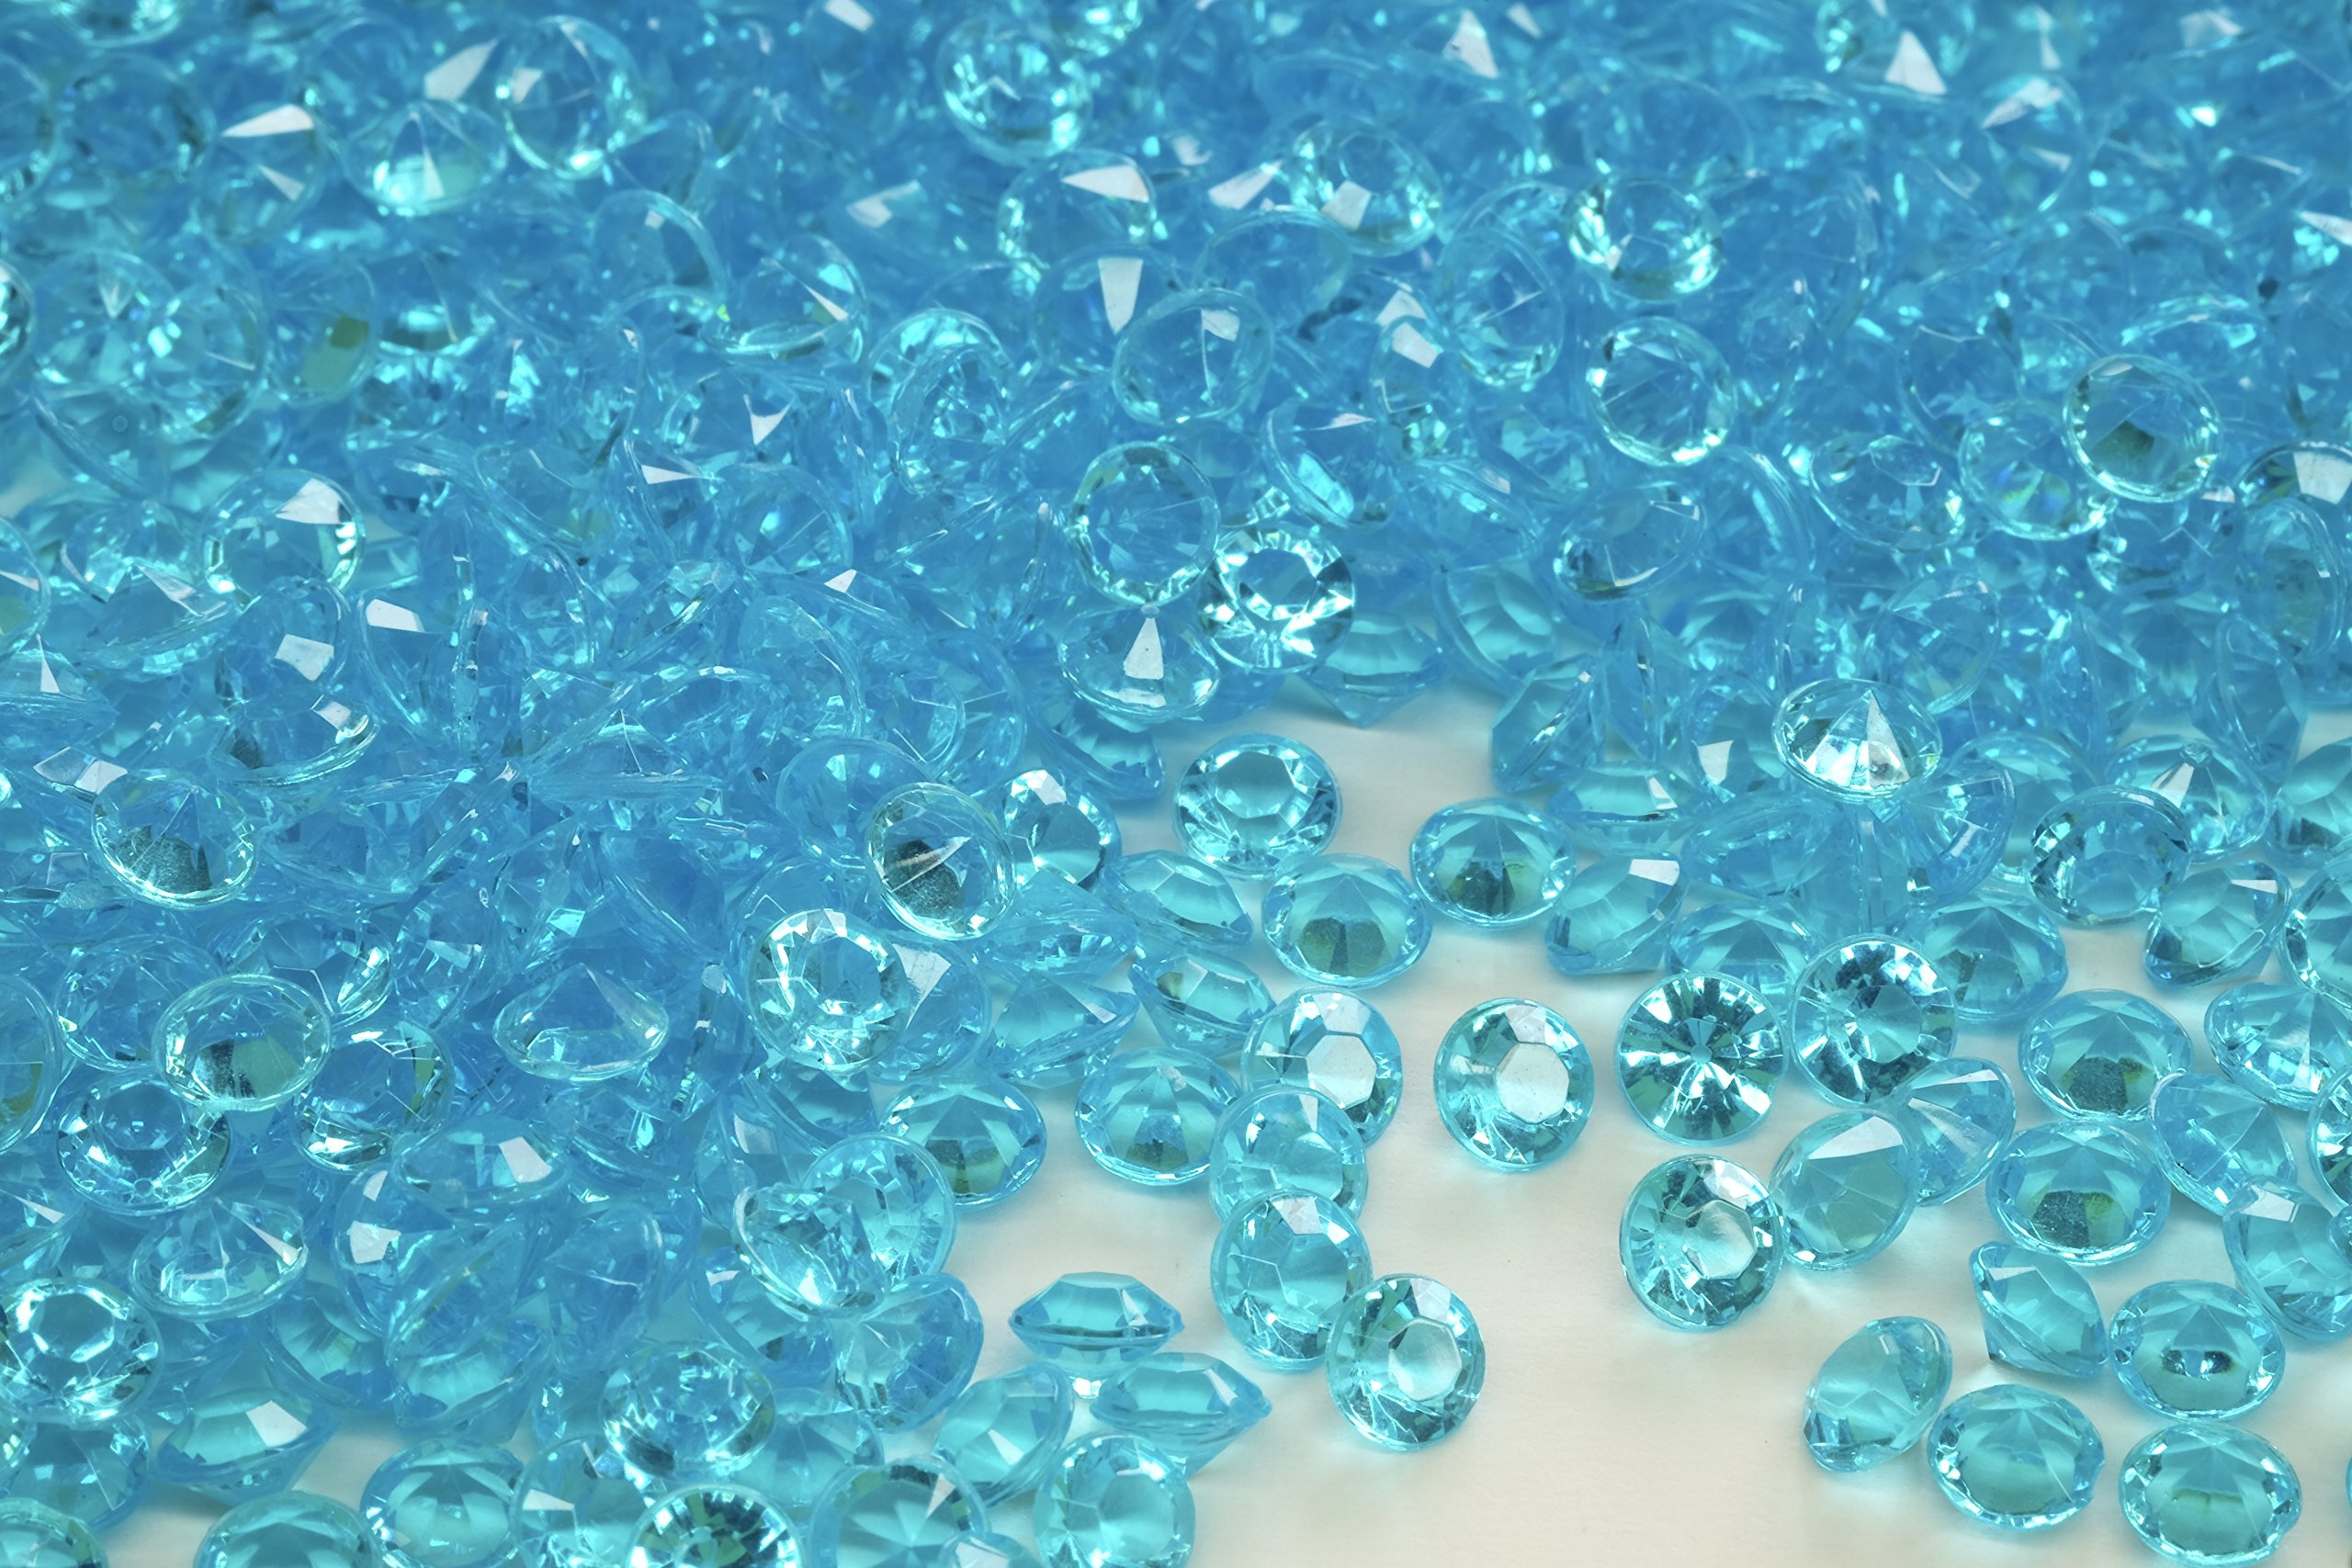 2000 Pcs 4.5mm 1/3ct Turquoise Blue Wedding Party Diamond Confetti Table Scatters Decoration Good Crafted DIY Ideas